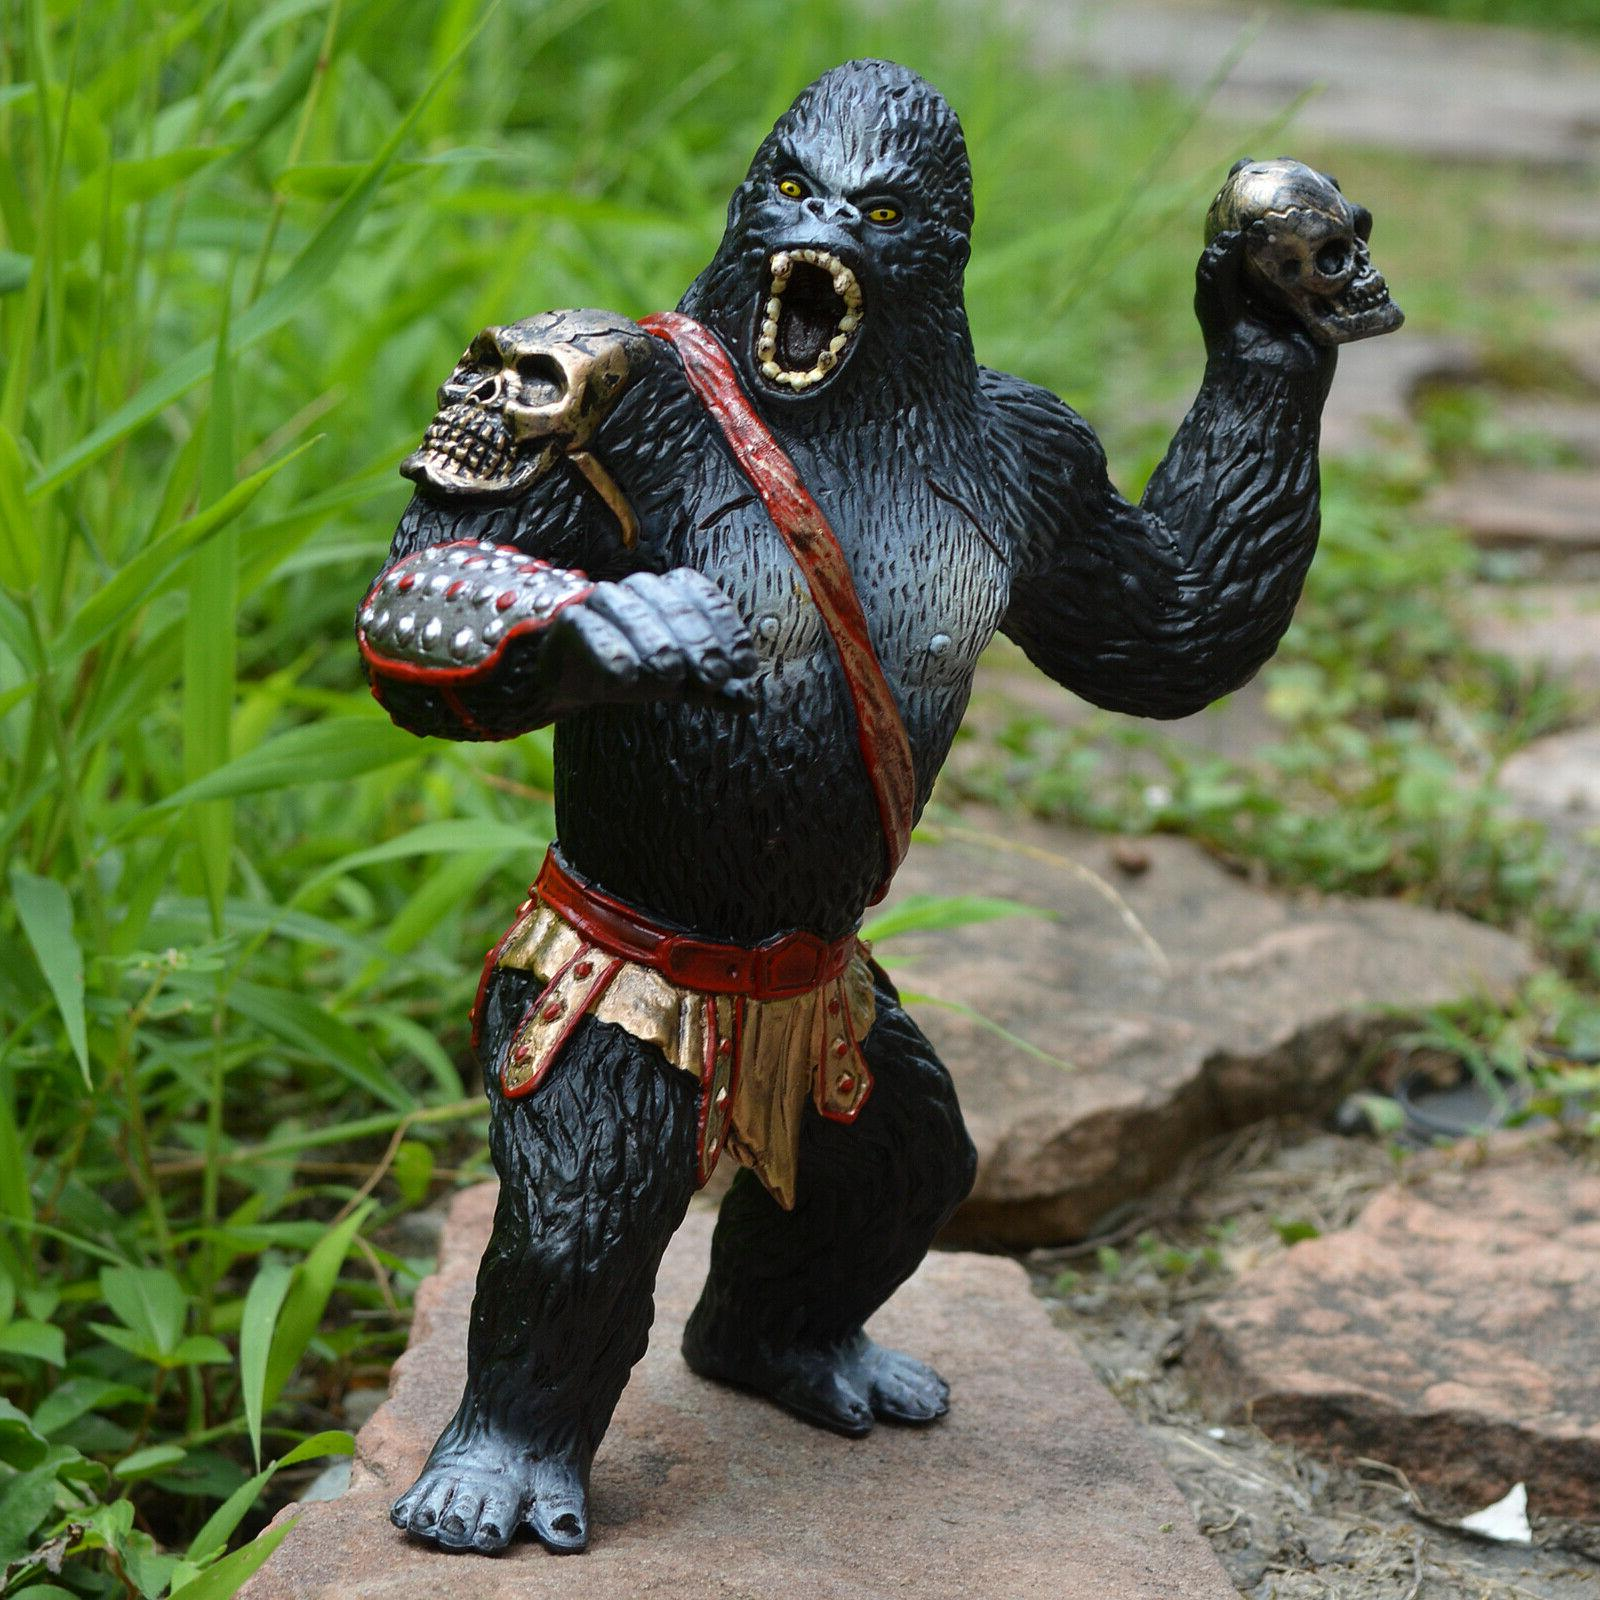 replica king kong gorilla model action figure